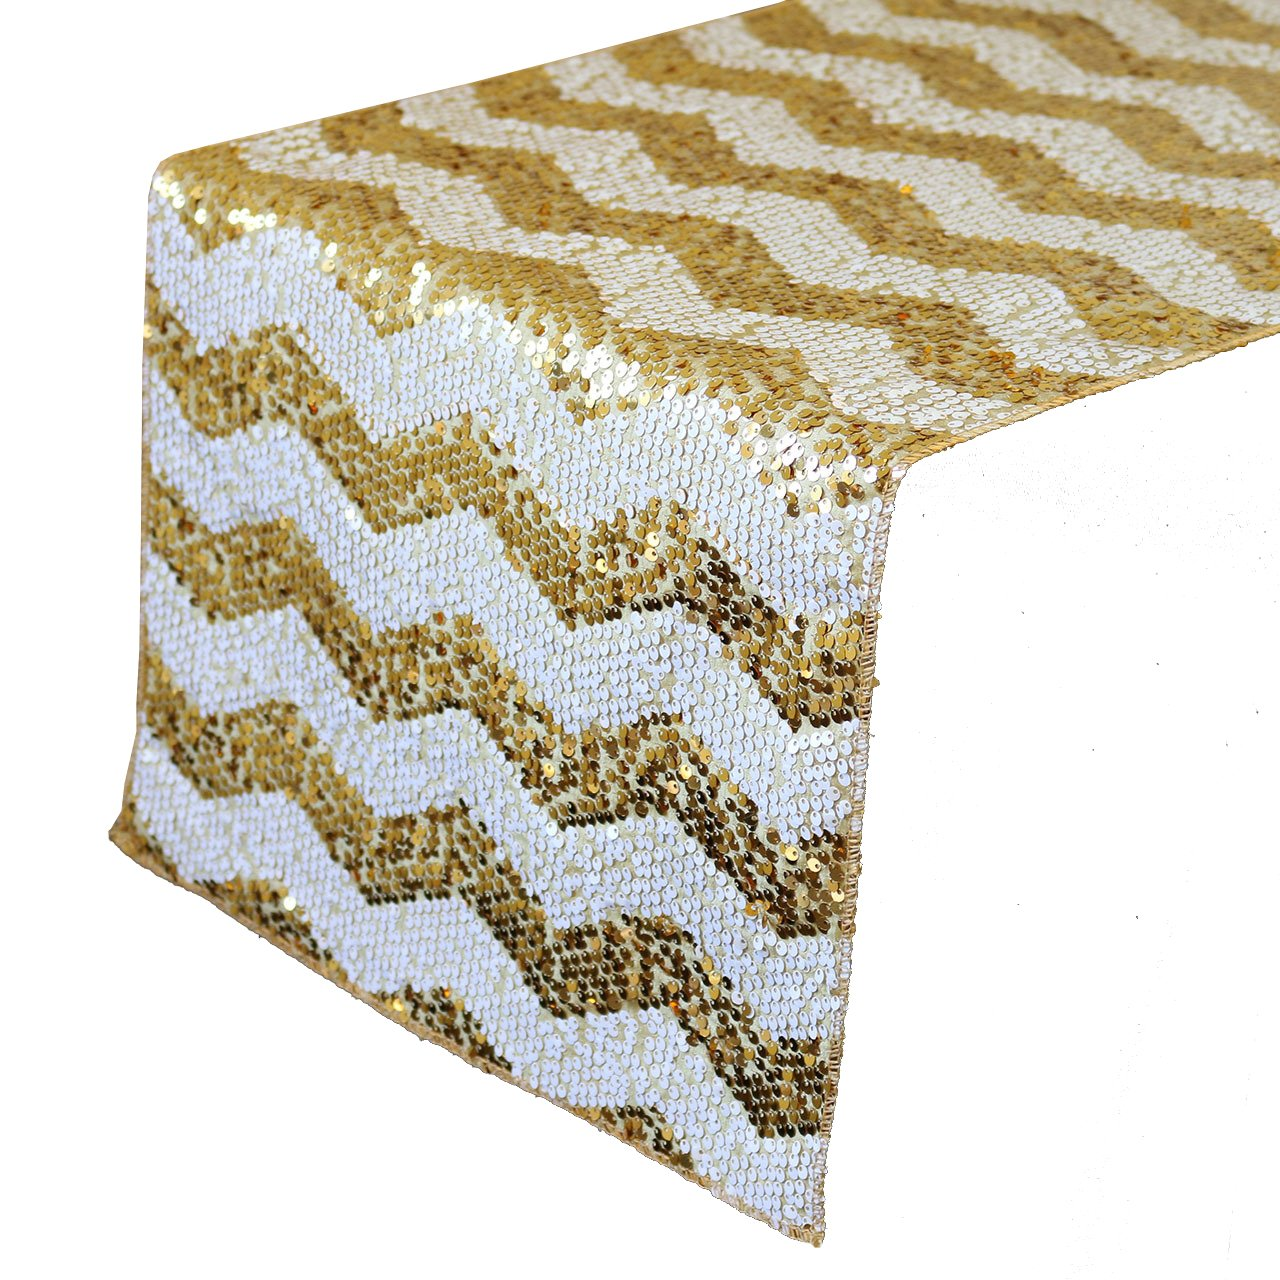 Your Chair Covers - 14 x 108 inch Chevron Sequin Table Runner White and Gold, Glitz Table Runner for Weddings, Events, Hotels and Catering Services